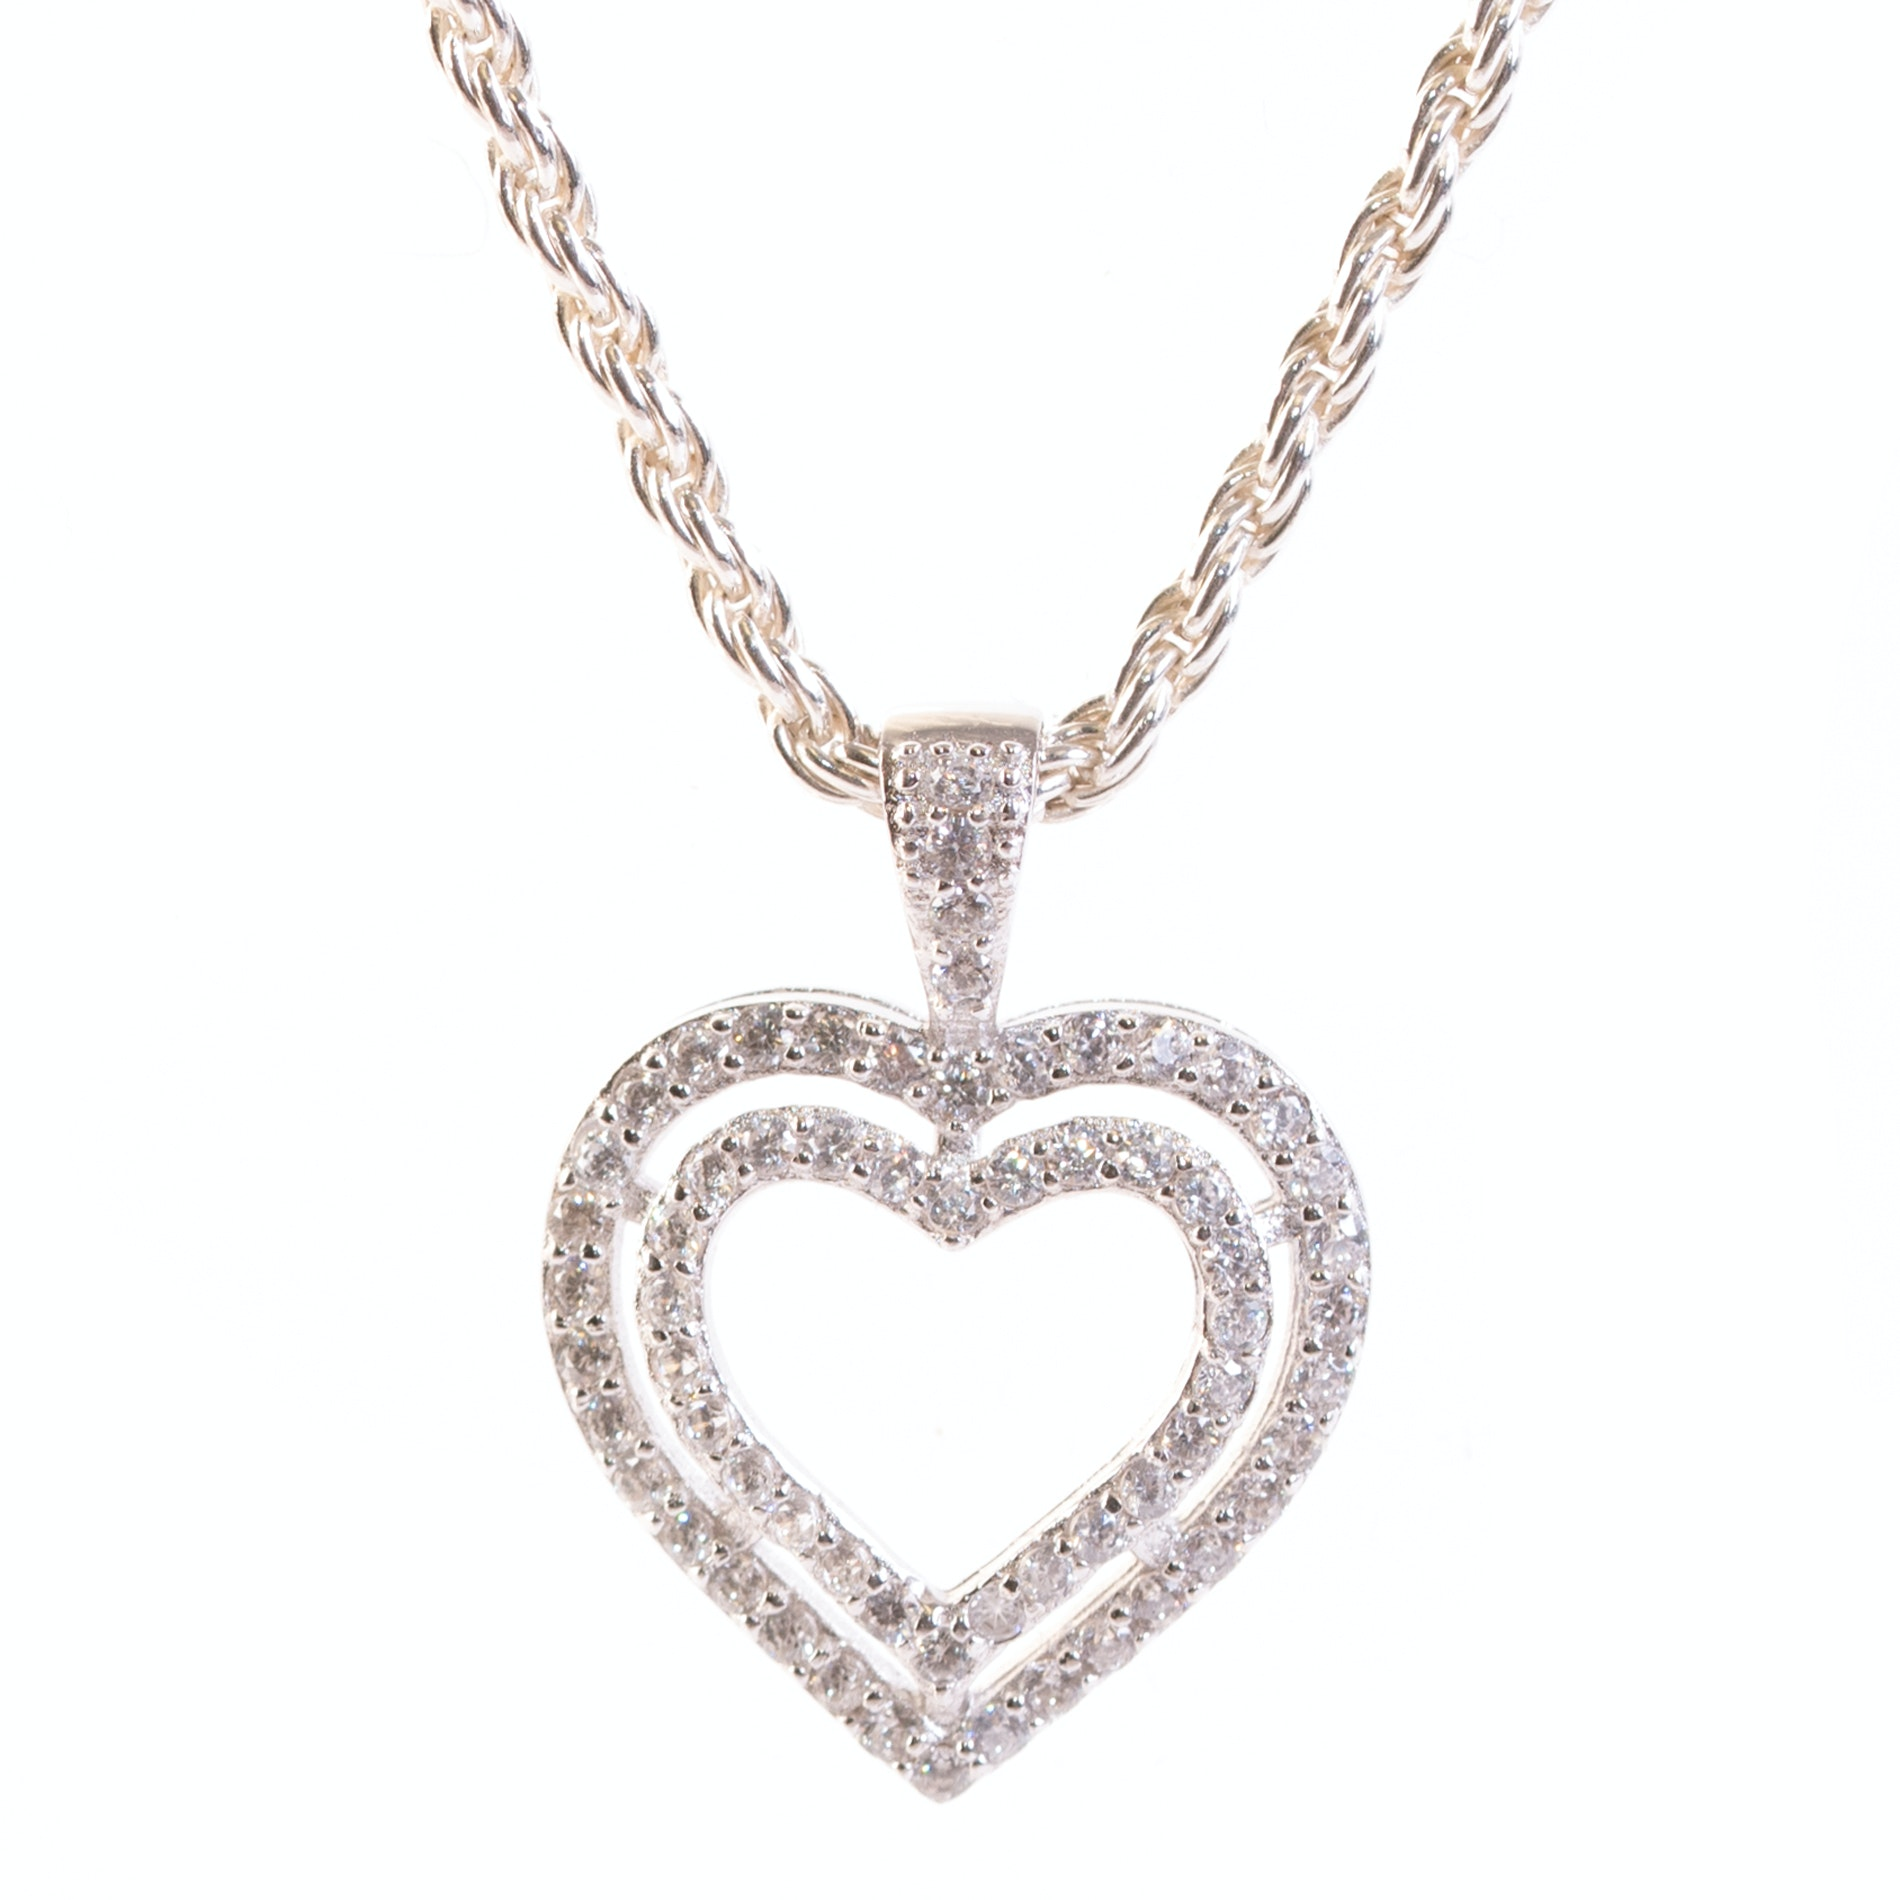 Sterling Silver and Cubic Zirconia Double Open Heart Pendant Necklace